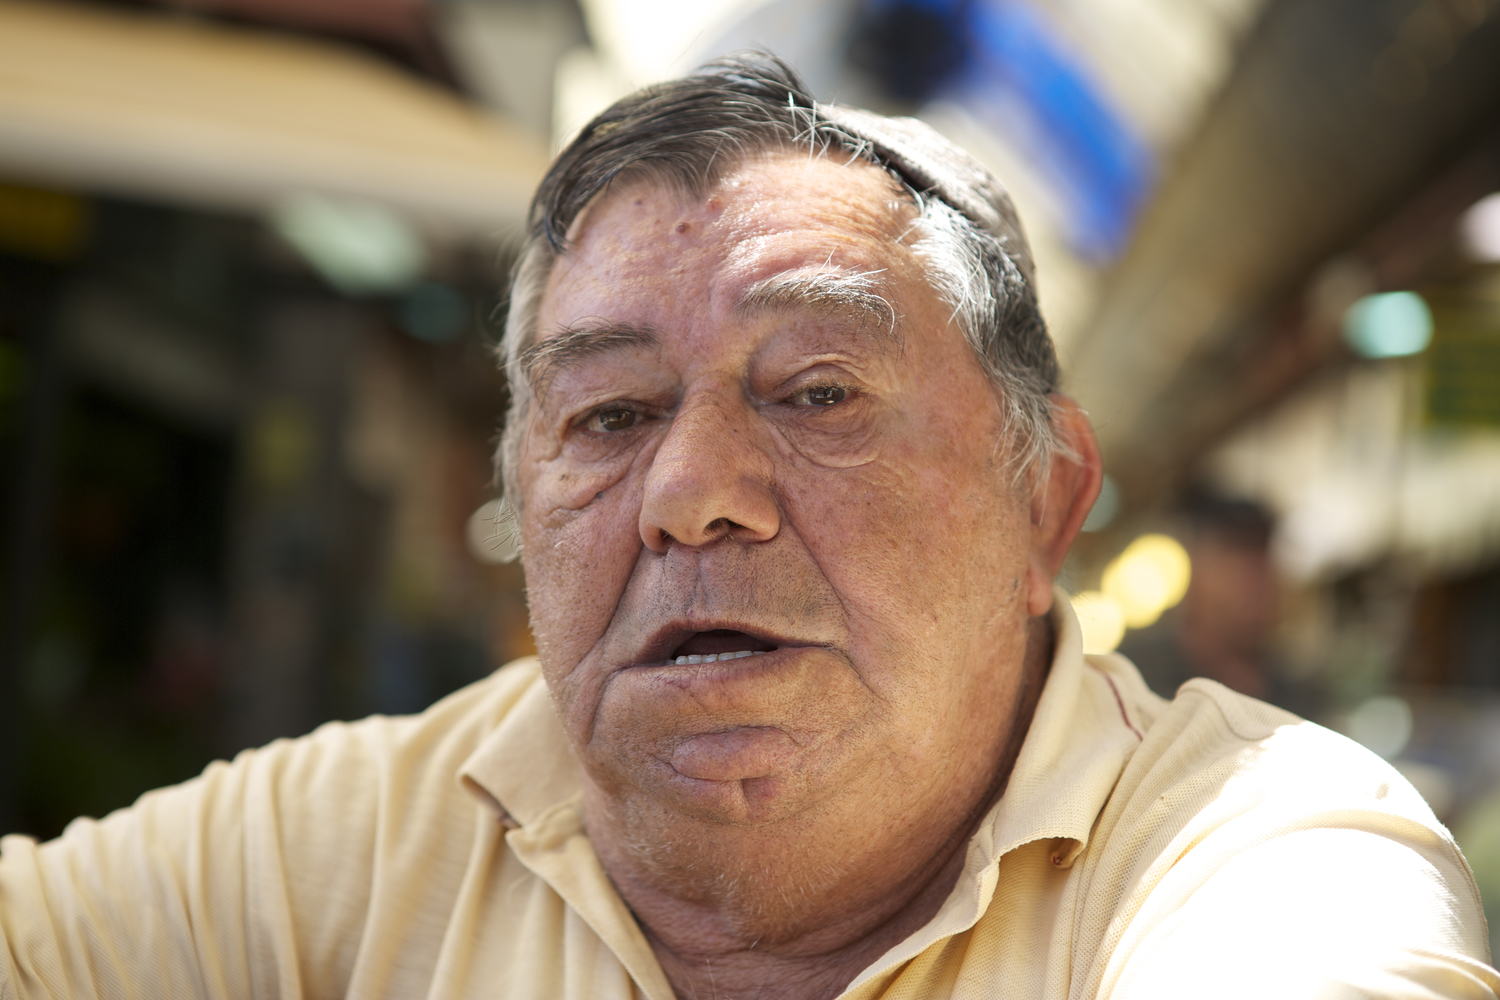 Portrait of a man at the Mahane Yehuda Market in Jerusalem, Israel.